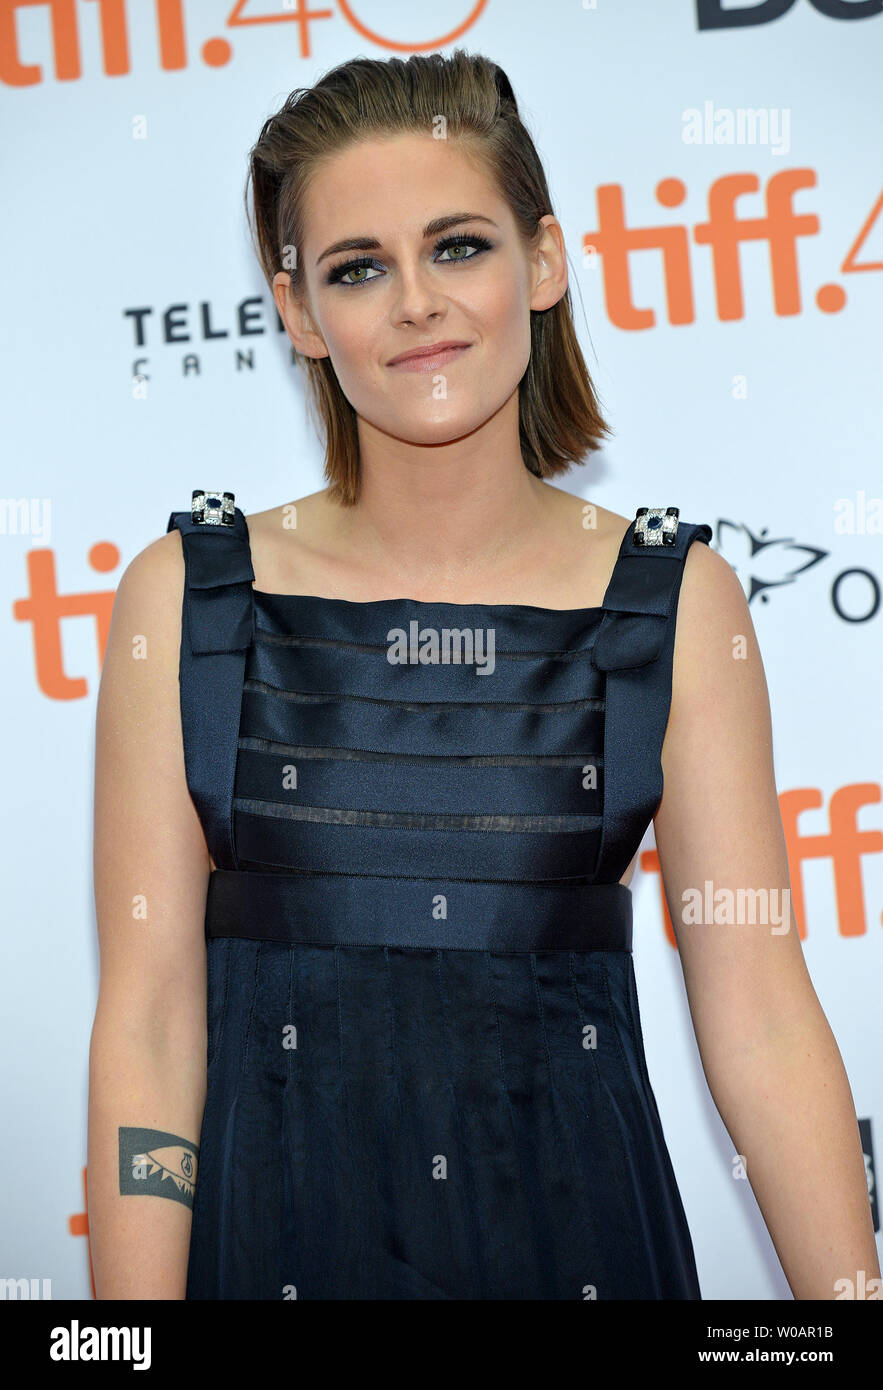 Kristen Stewart arrives at the Toronto International Film Festival premiere of 'Equals' at the Princess of Wales theatre in Toronto, Canada on September 13, 2015. Photo by Christine Chew/UPI Stock Photo